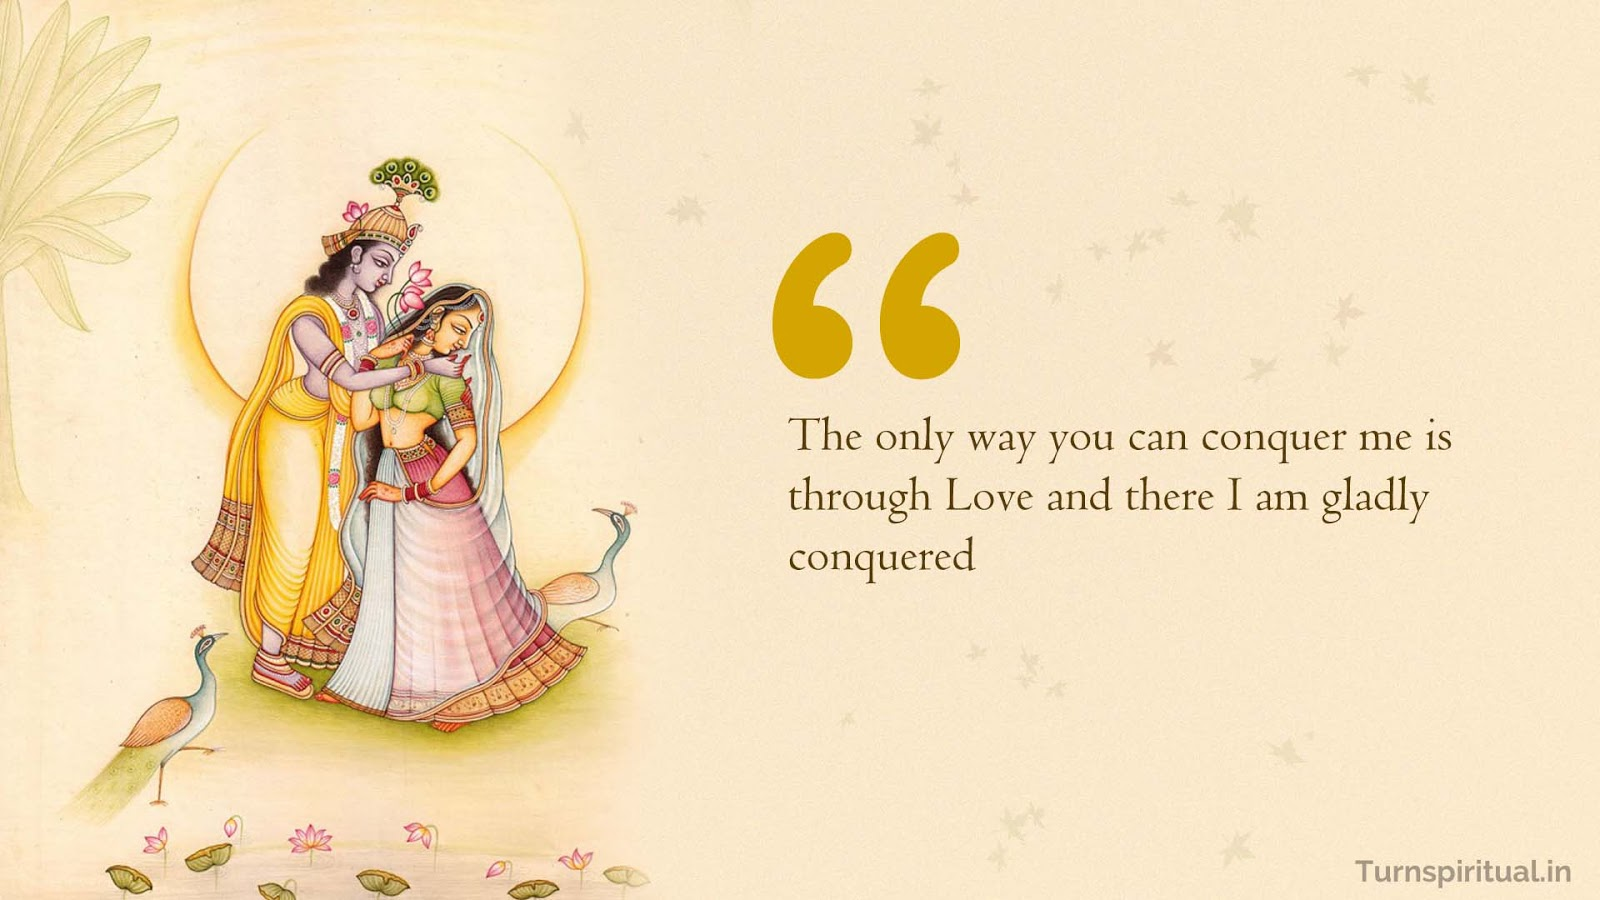 Lord Krishna Quotes Delectable 14 Quoteslord Krishna On Love From Bhagavadgita  Turnspiritual.in